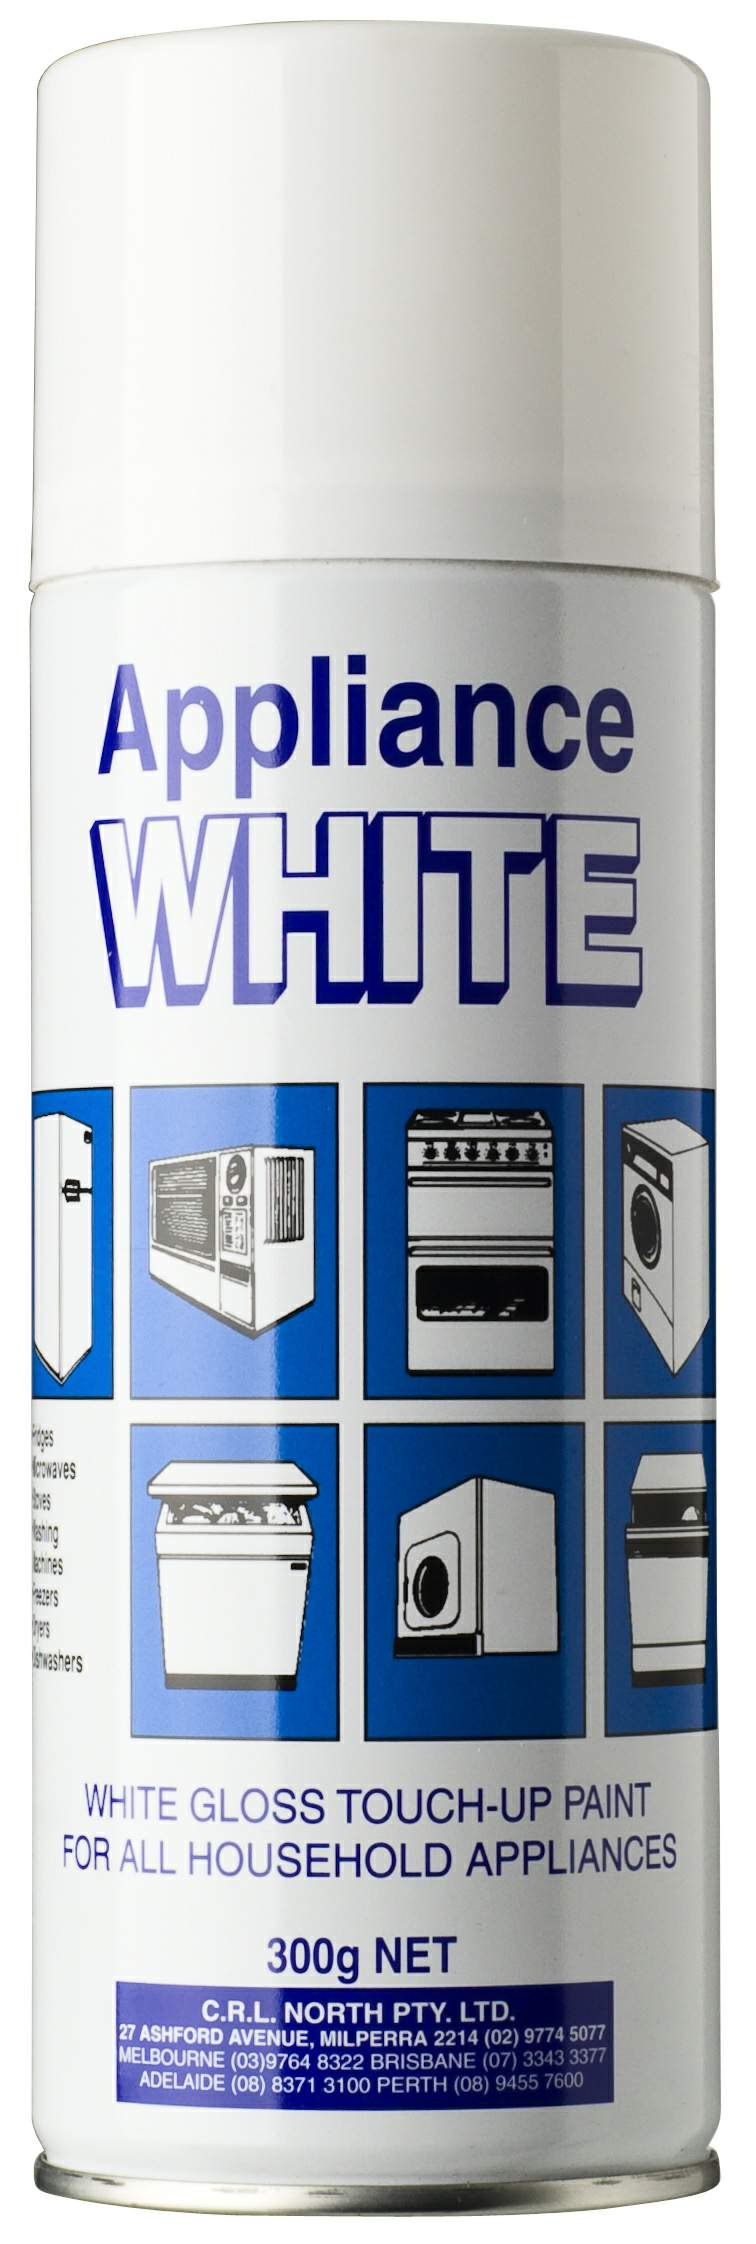 Thumbnail - Appliance White